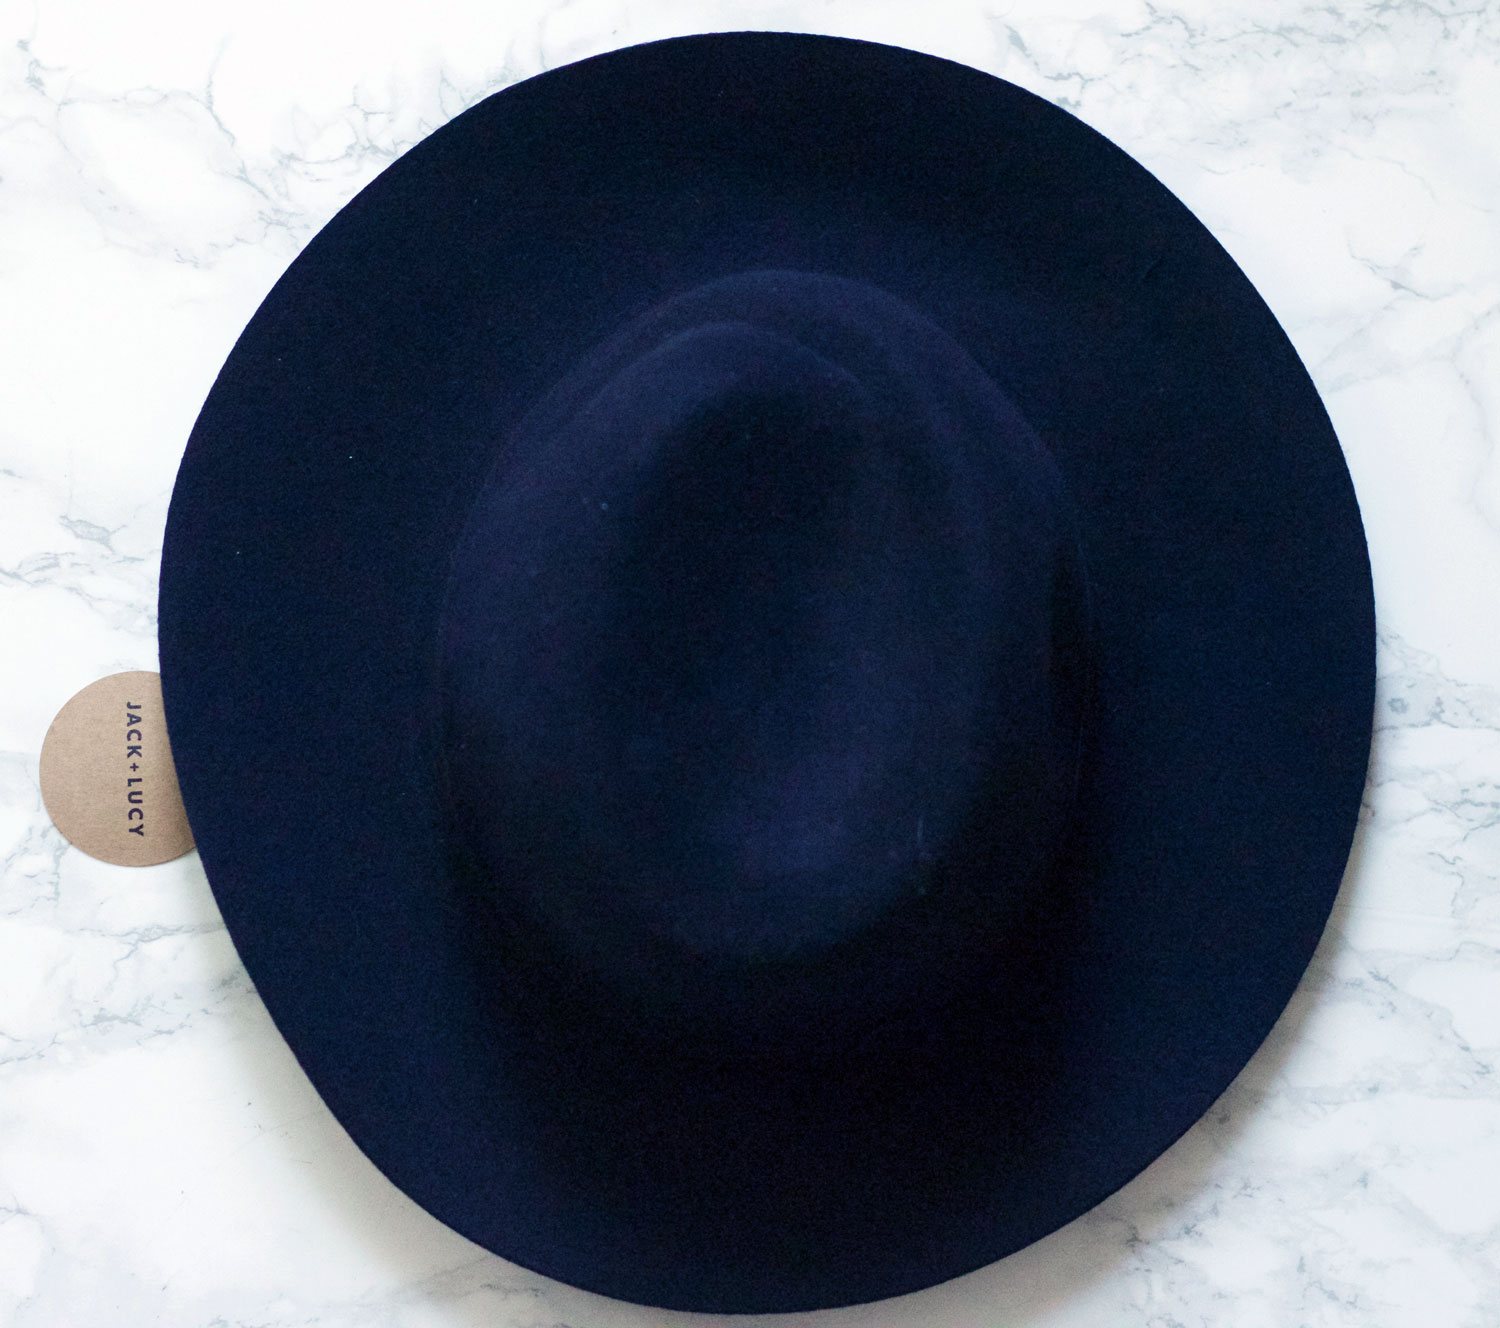 JACK & LUCY : You probably know by now that Im a lover of wide-brim felt hats! This is a great one to start with if you're new to wearing hats, but are wanting to try this trend. Fall is a great time to try, and this hat isn't too wide at all, it's vert subtle and very cute!